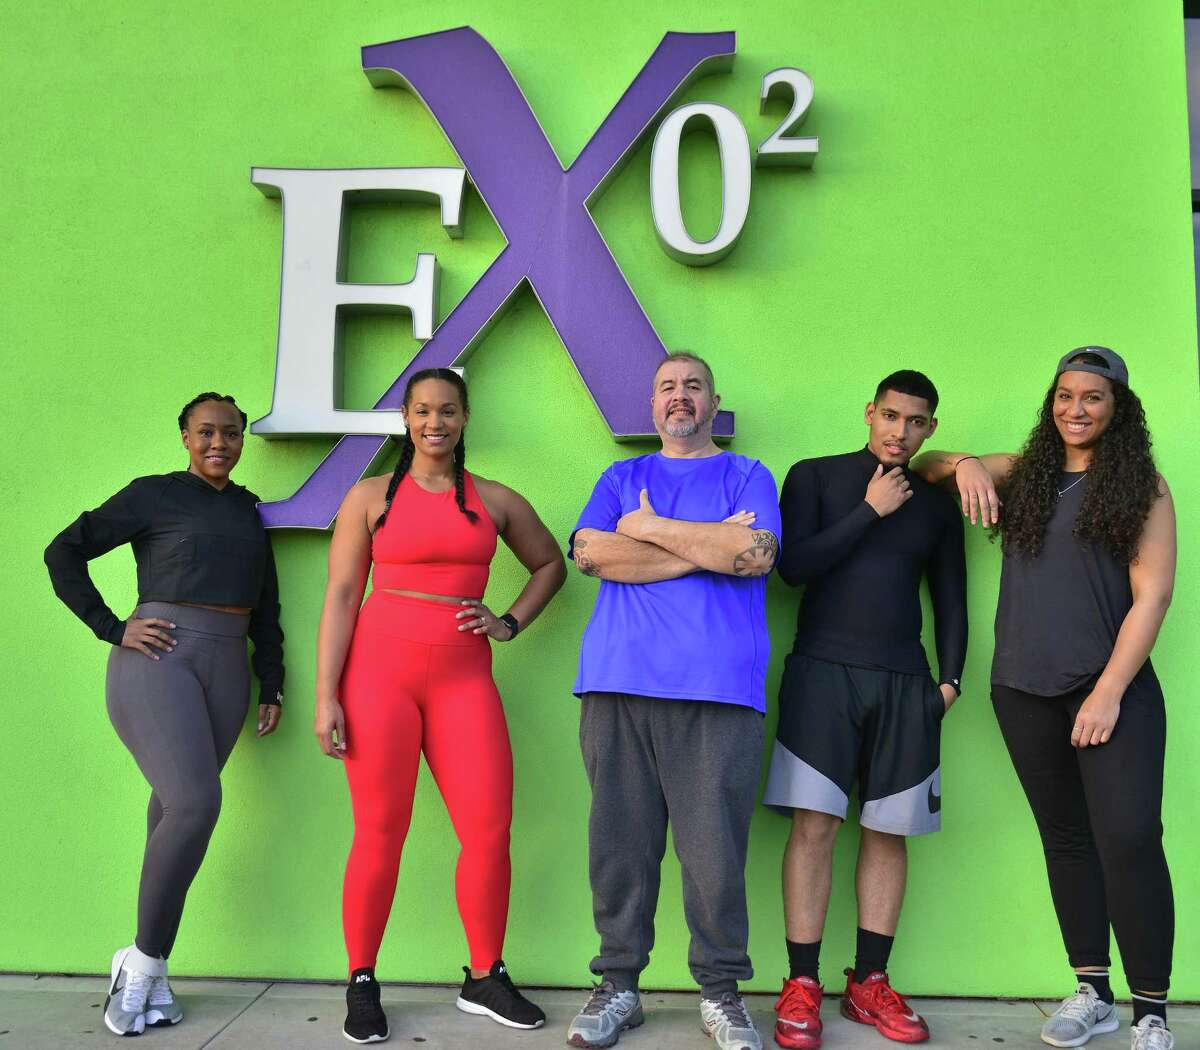 Trinell Maxie, from left, Mariah Sexton, Edwin Broussard, Joseph Brooks and Erikka Walker at Exygon Health and Fitness.